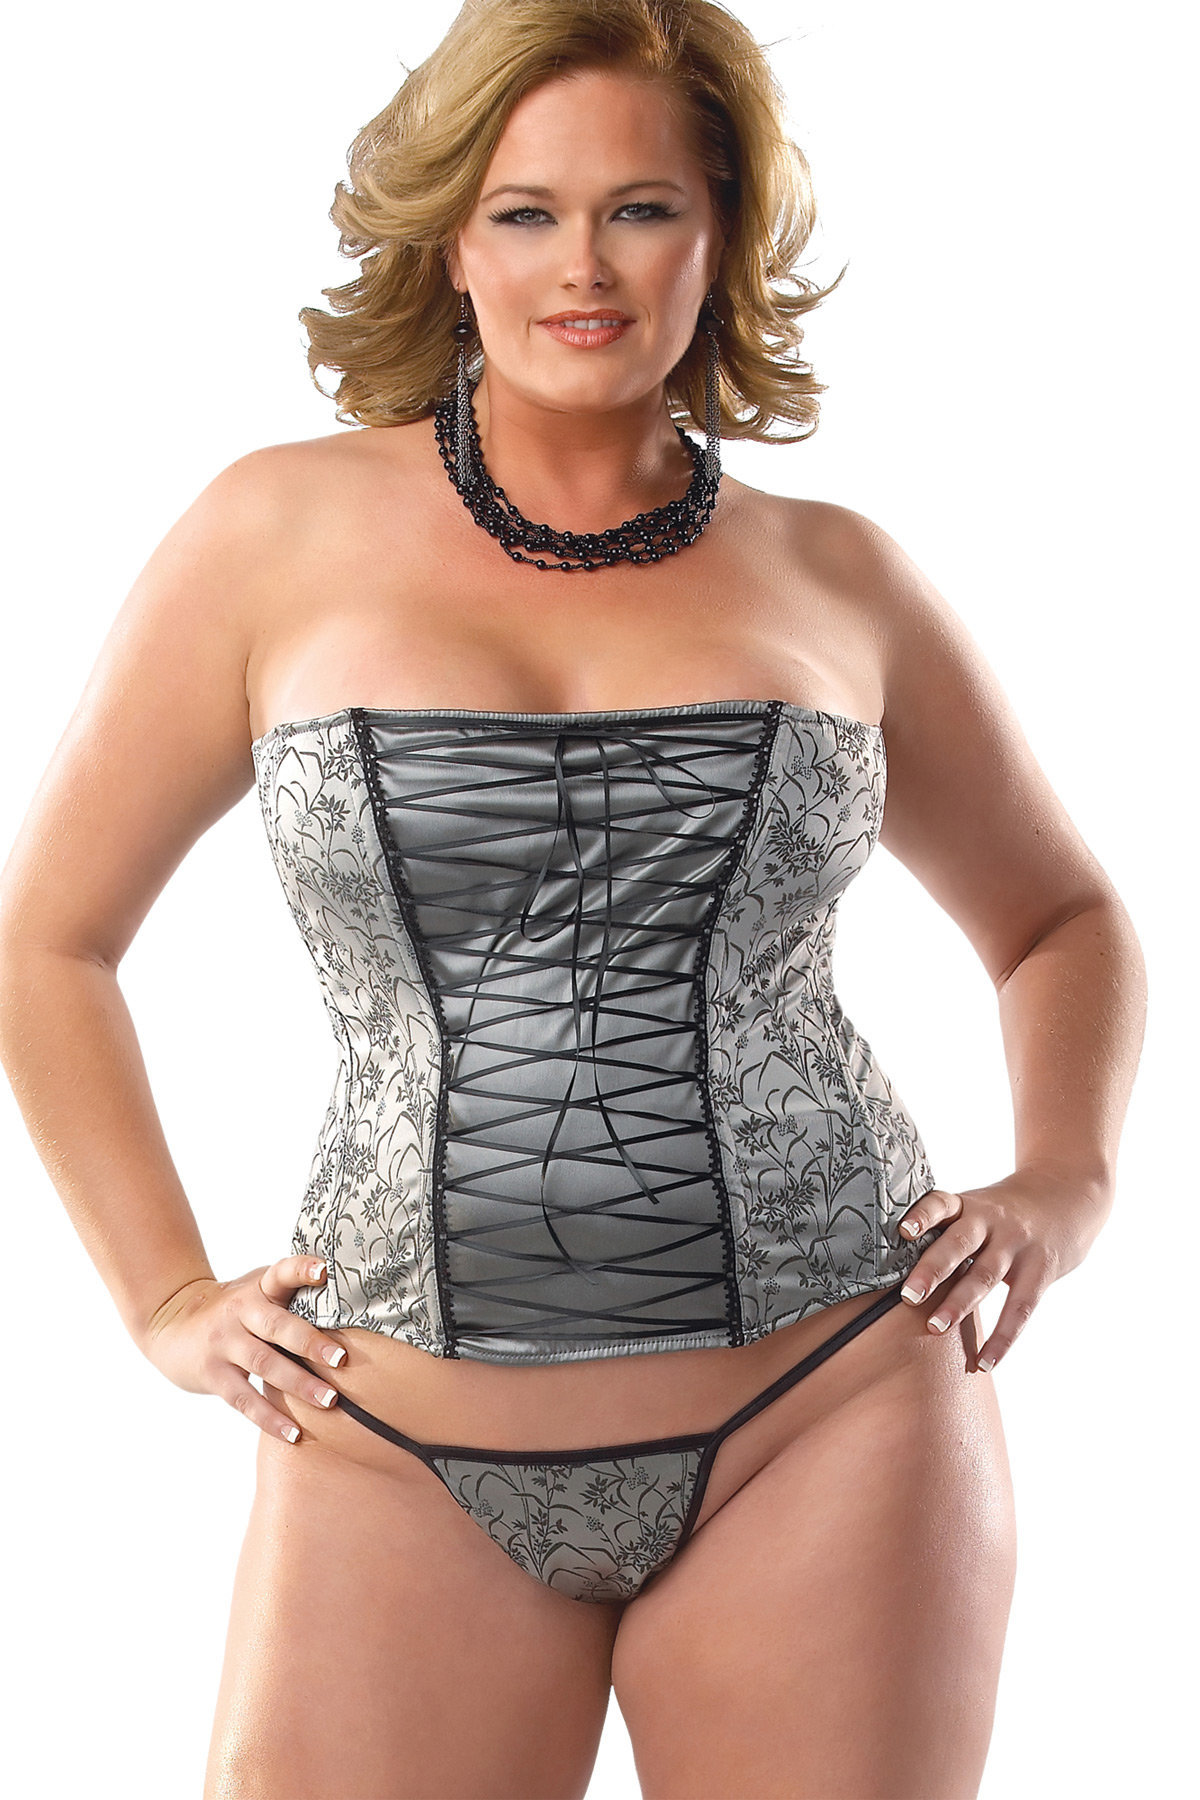 Plus size lingerie cheap